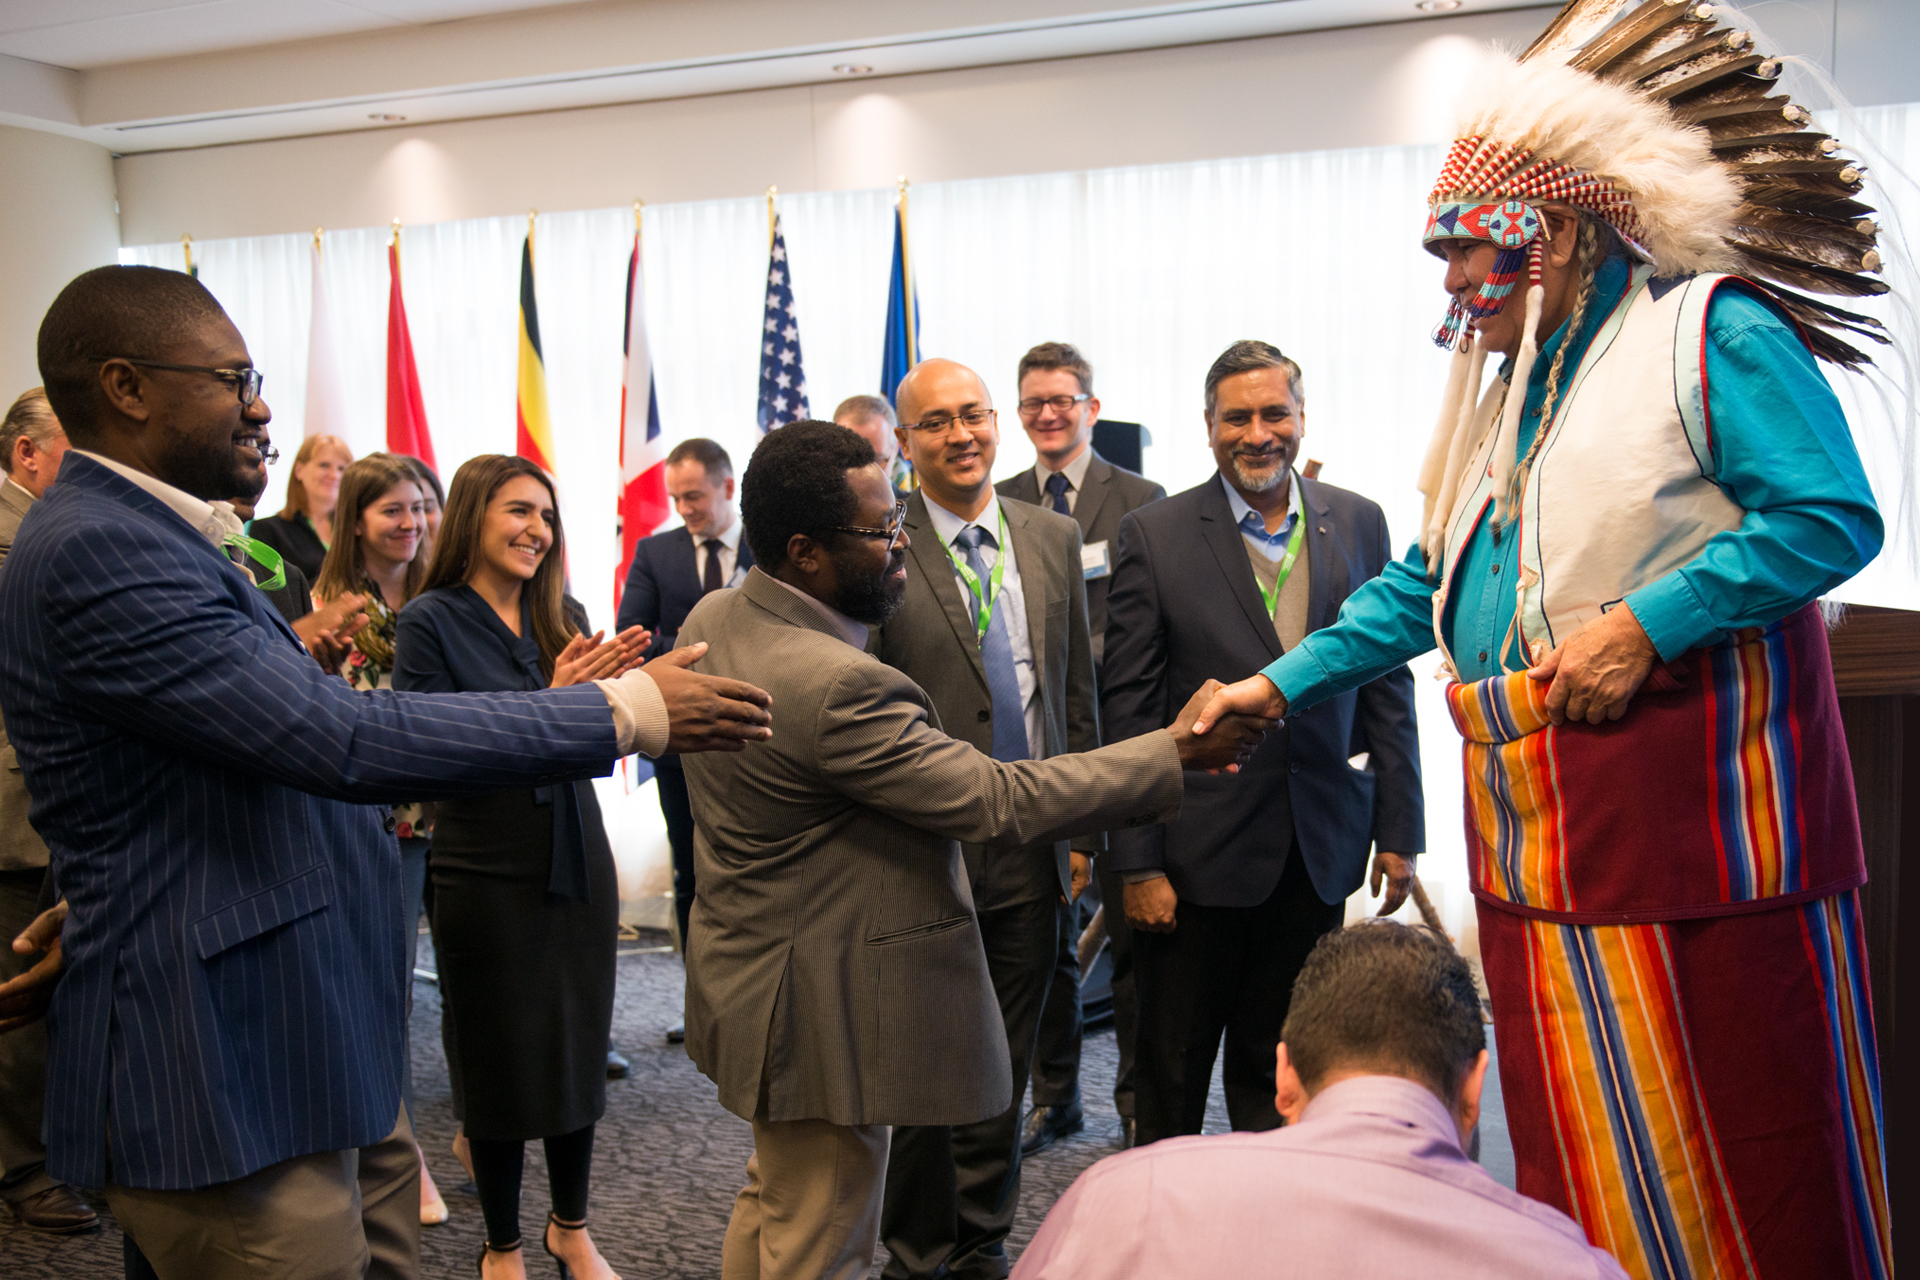 Blackfoot elder Dr. Reg Crow Shoe chats with delegates following a smudge ceremony.